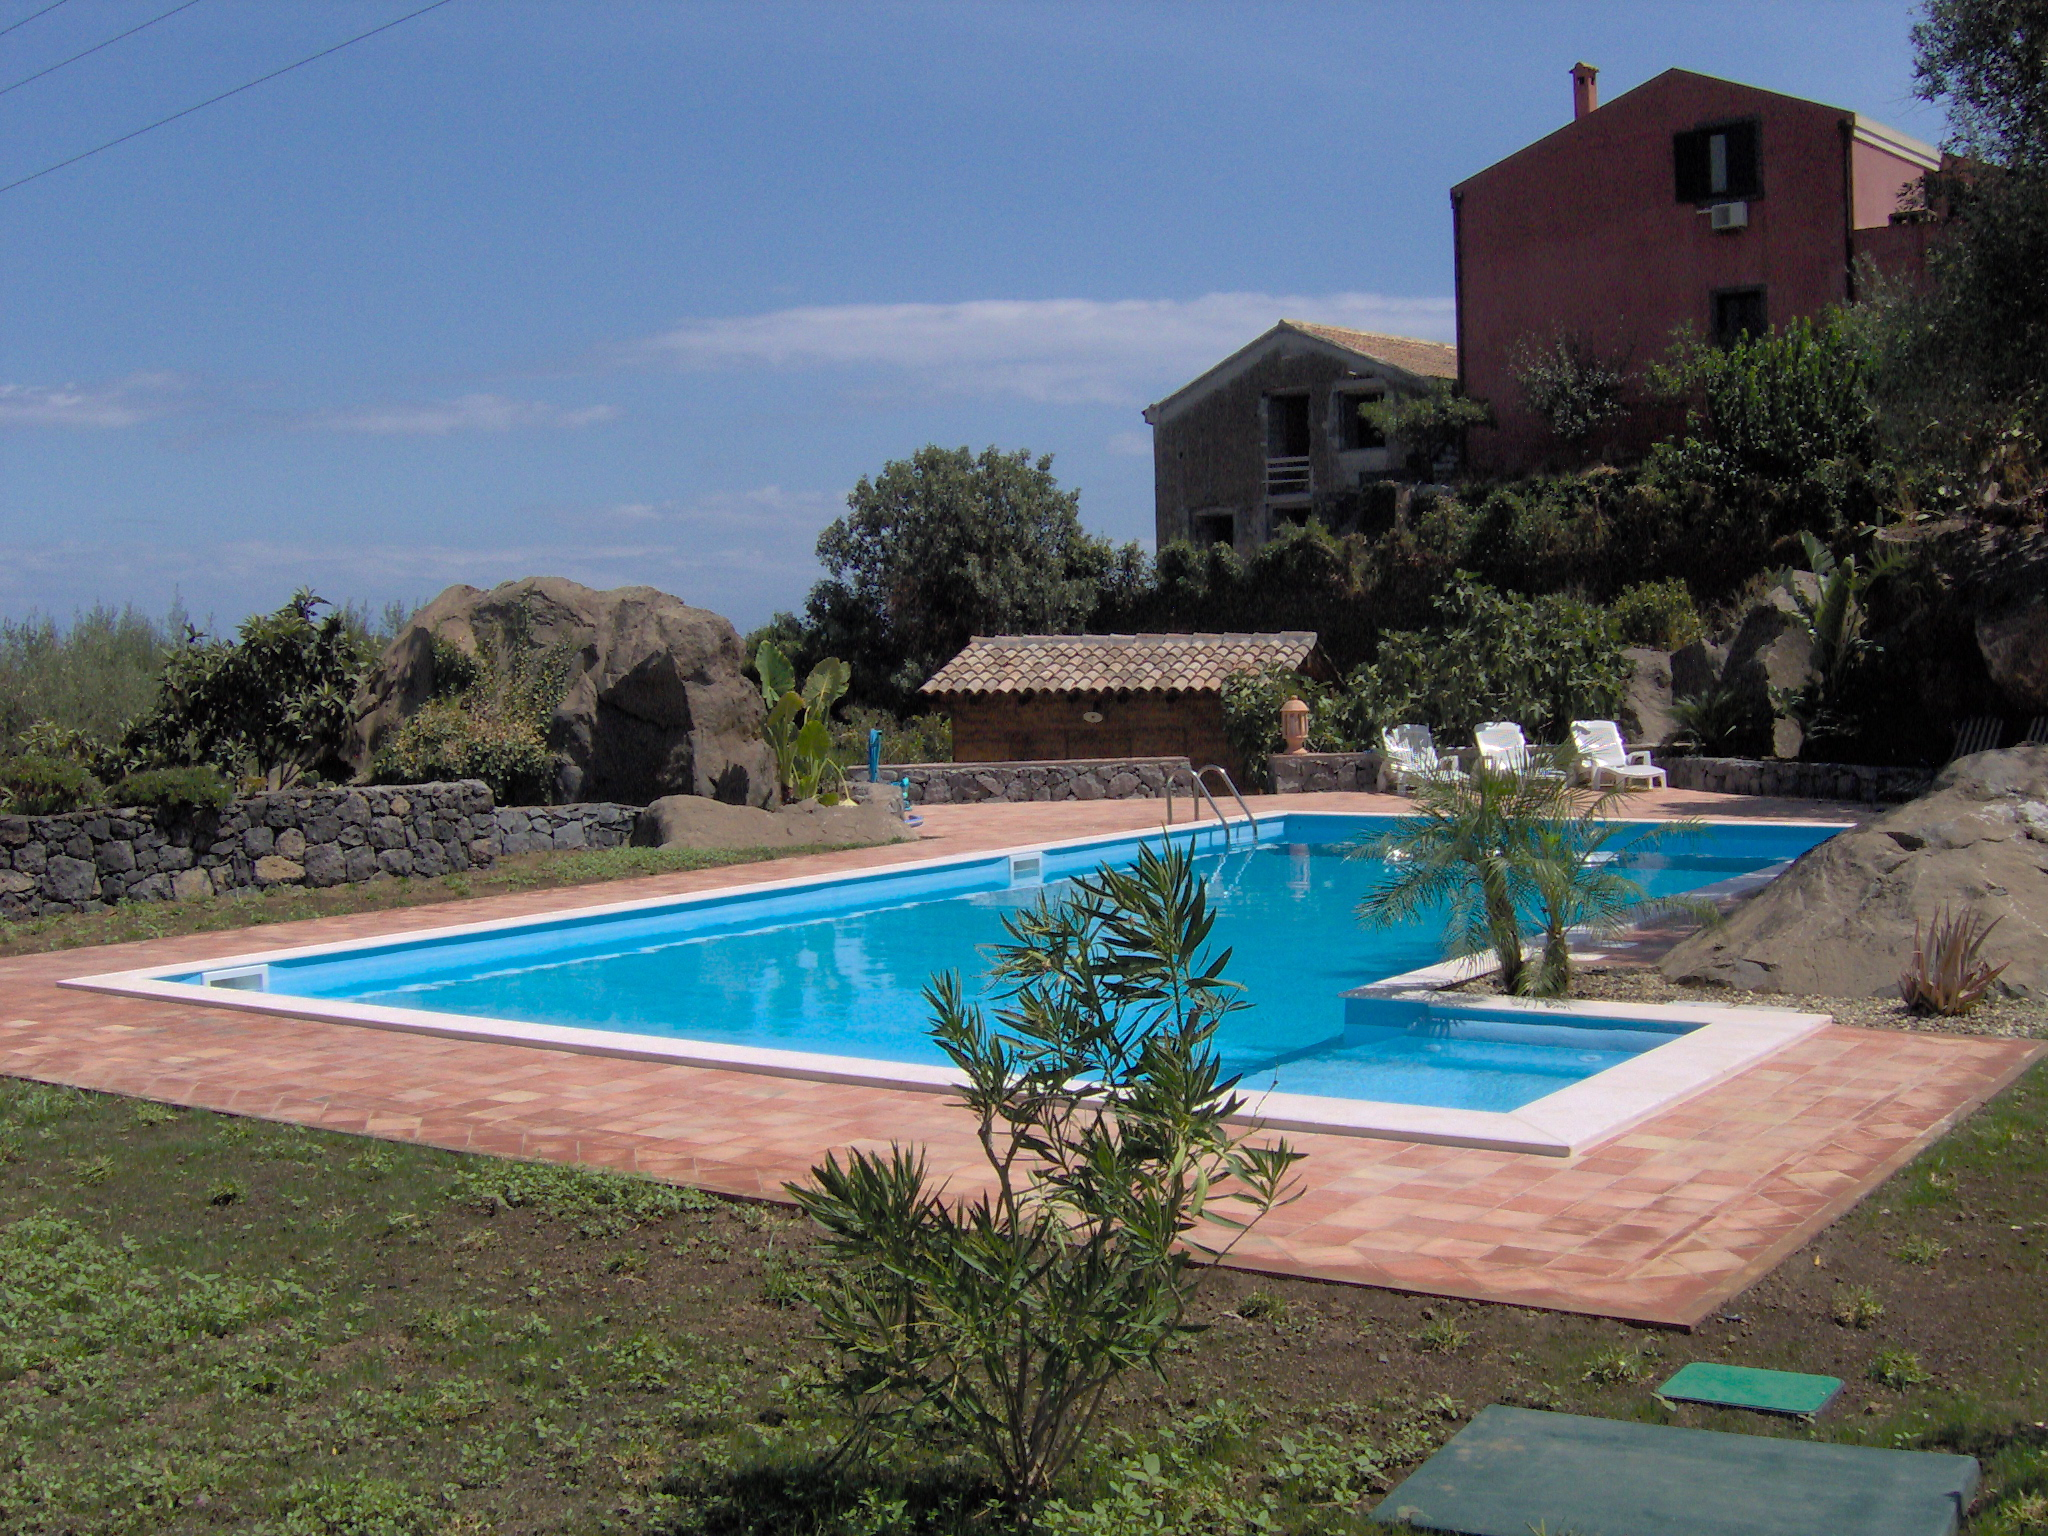 RS Piscine in Sicilia  Piscine - RS Piscine in Sicilia